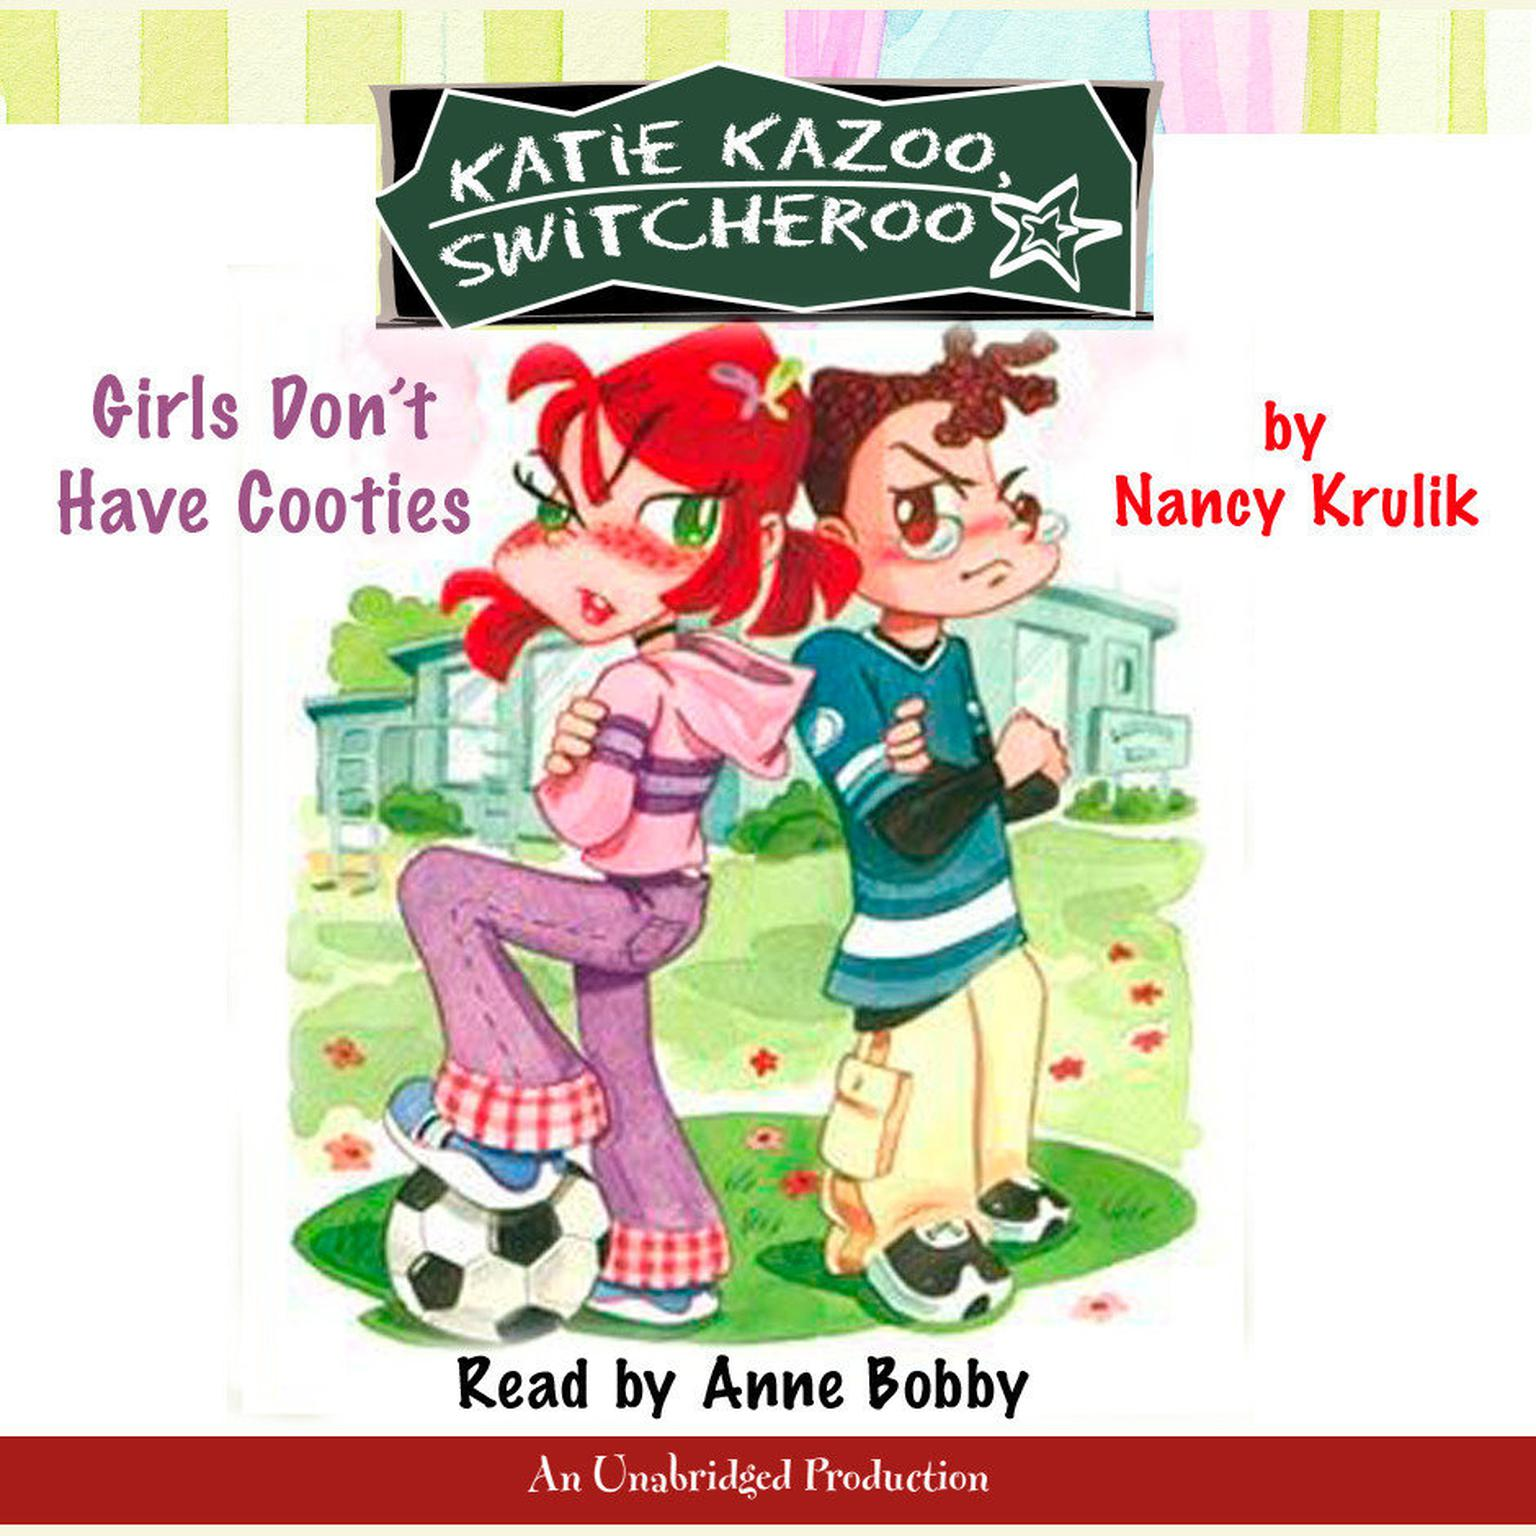 Printable Katie Kazoo, Switcheroo #4: Girls Don't Have Cooties Audiobook Cover Art